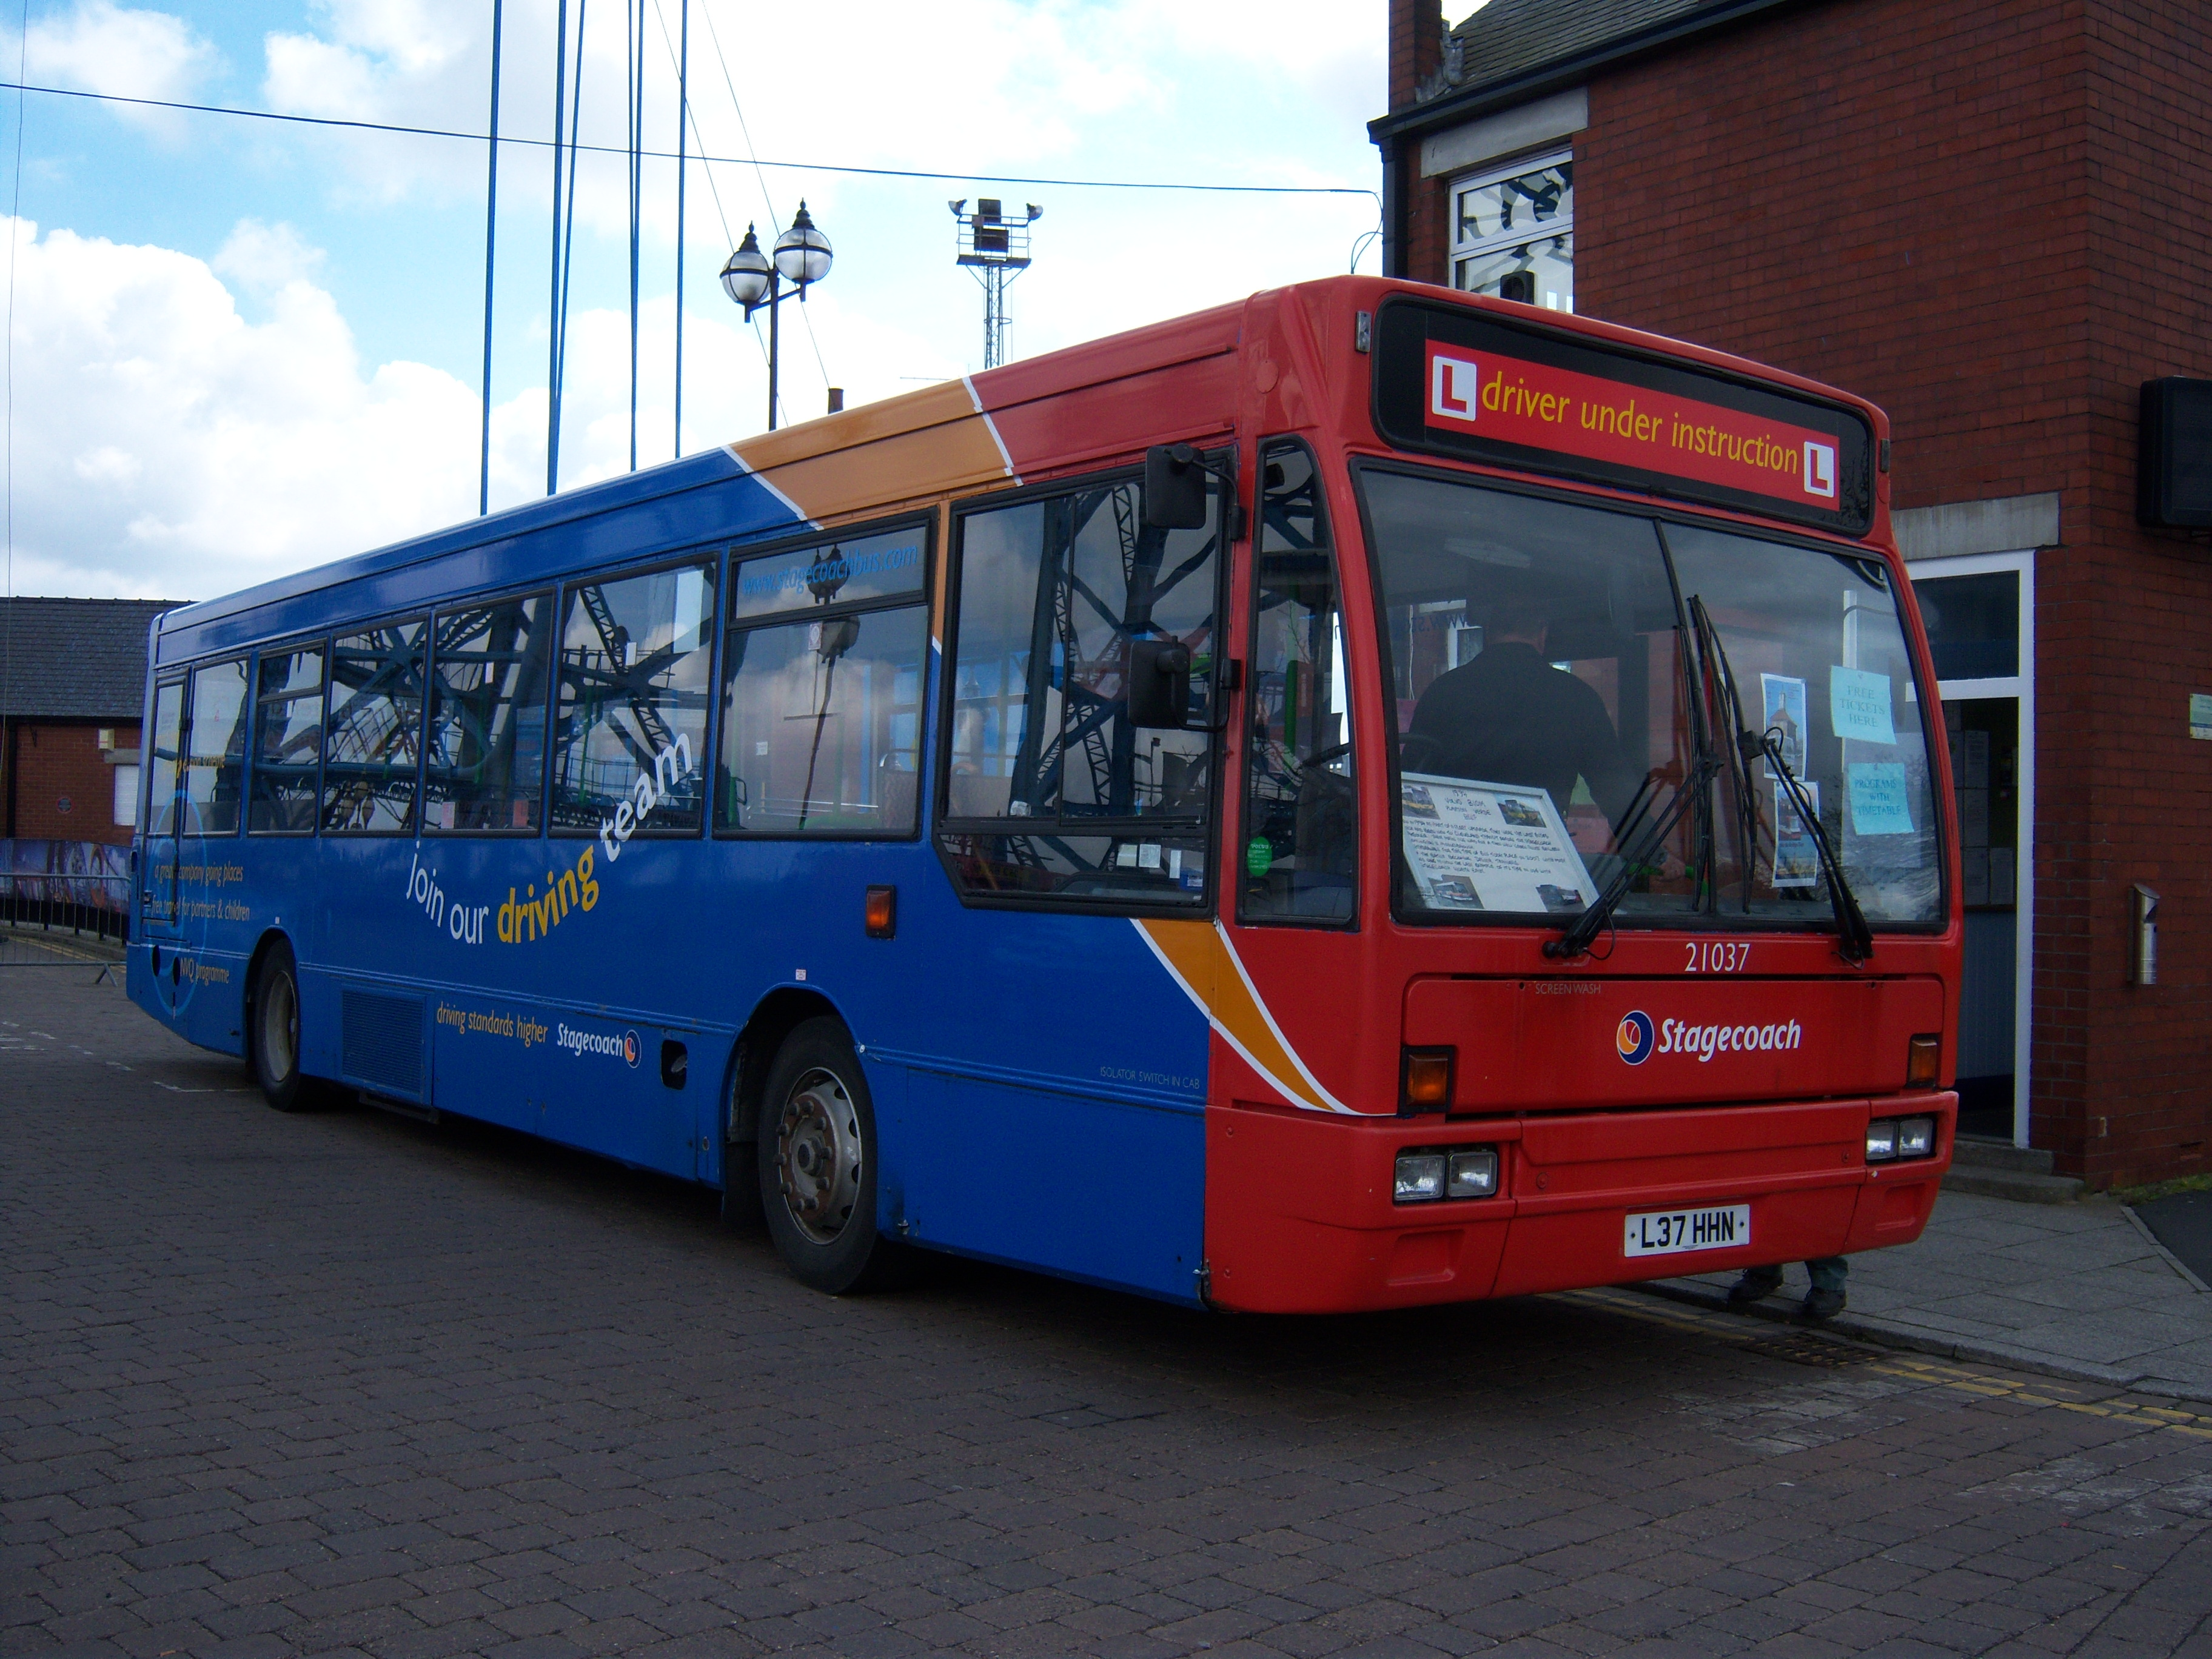 File Stagecoach North East Bus 21037 L37 Hhn 1994 Volvo